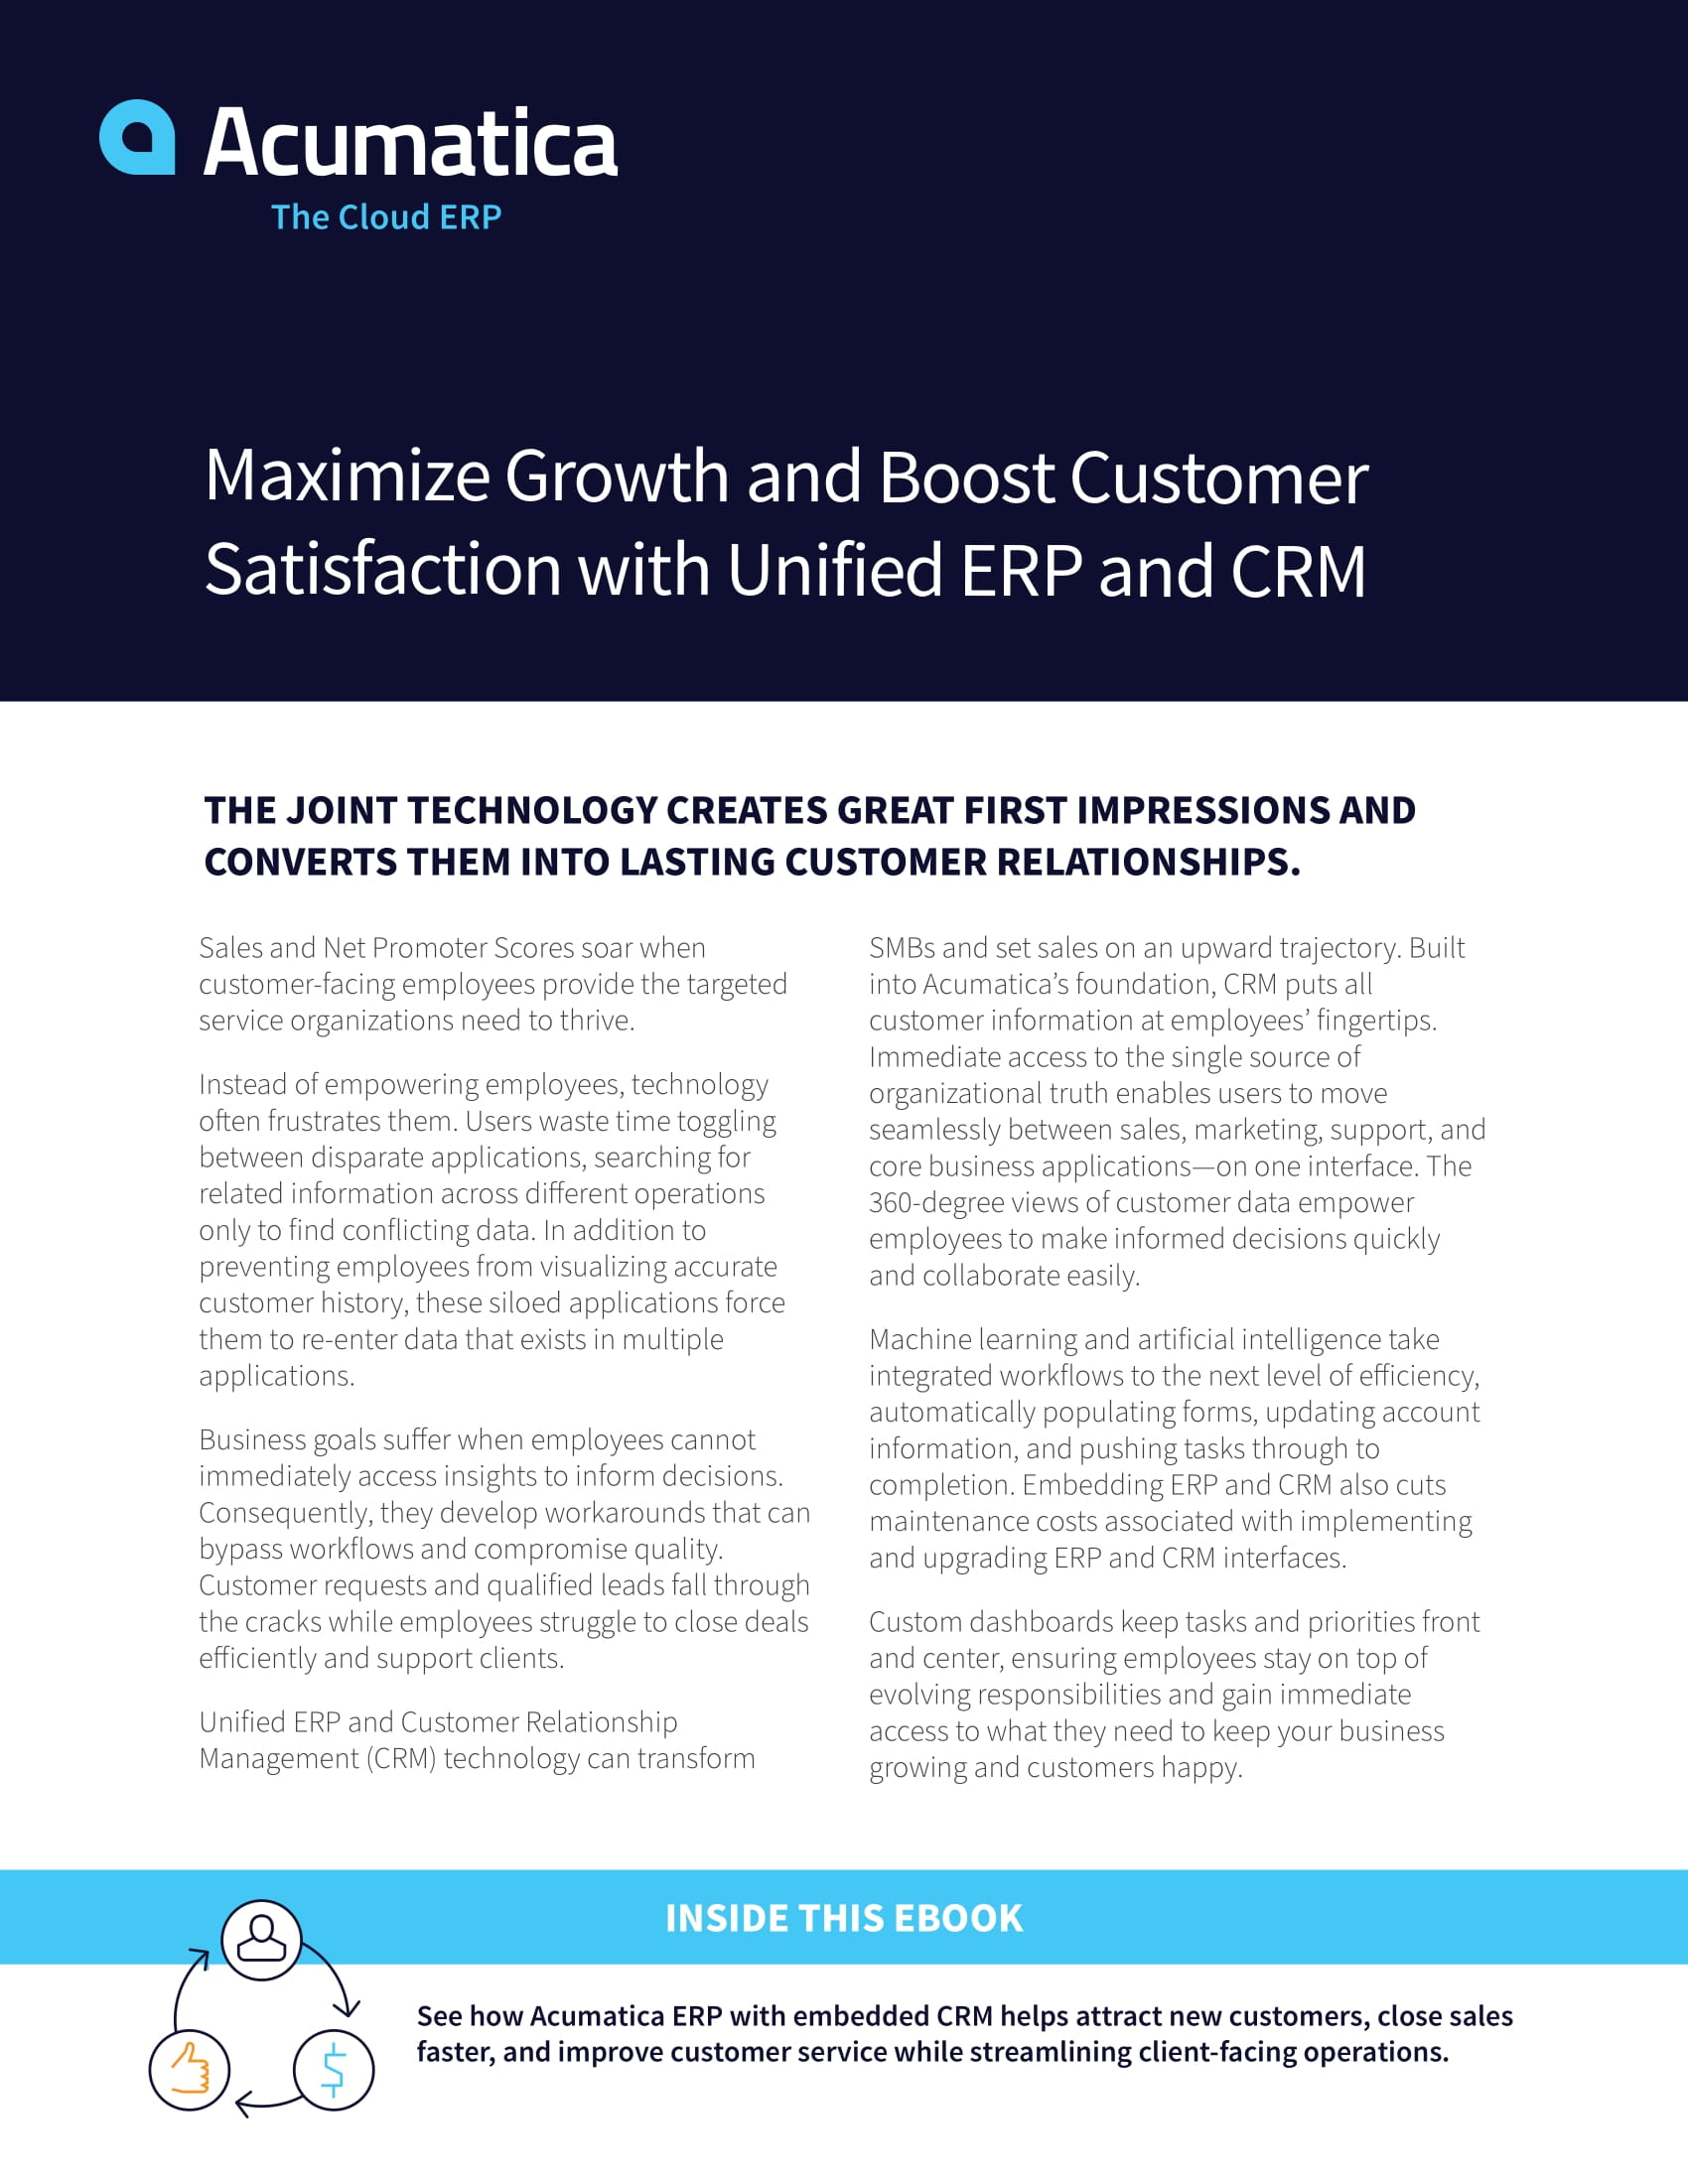 Using ERP with CRM to Maximize Growth